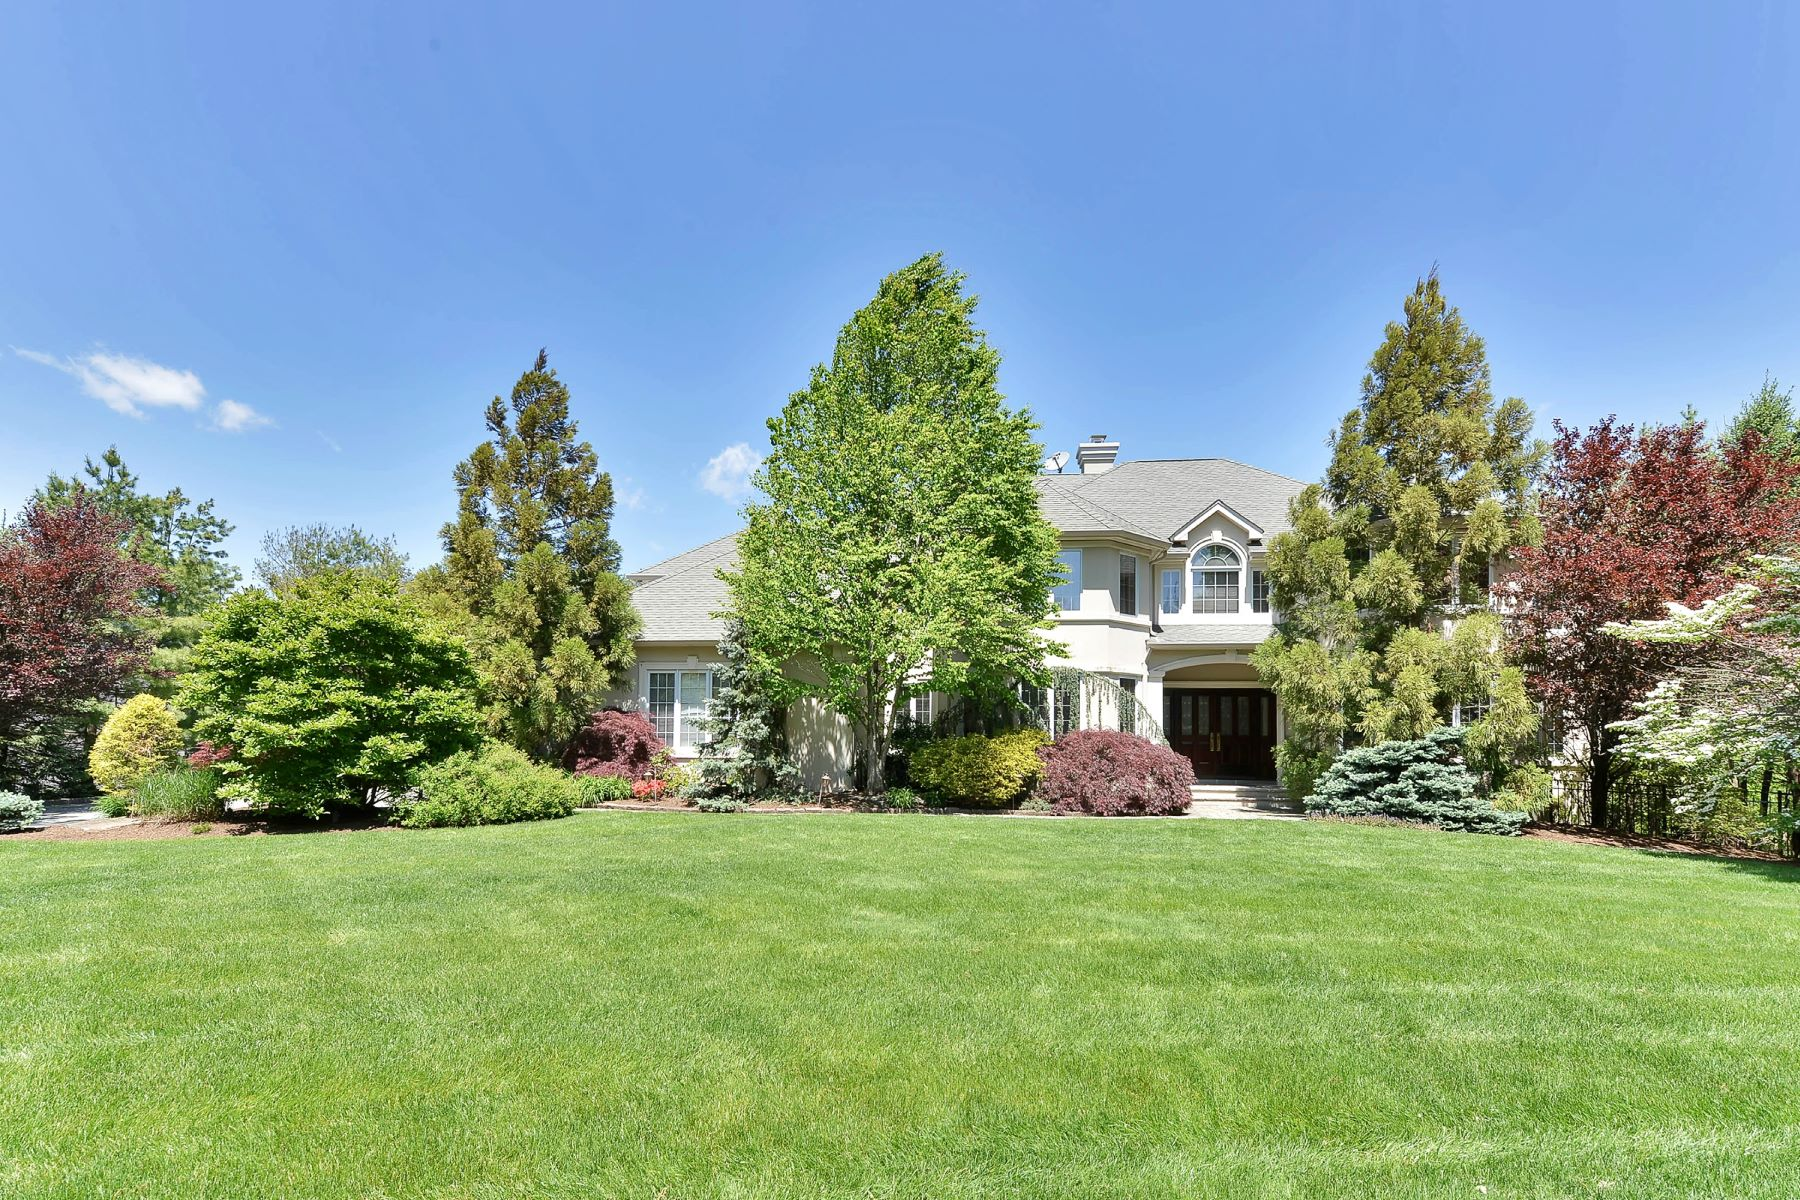 Single Family Home for Sale at Exquisite Manor 2 Hunter Ridge Woodcliff Lake, New Jersey 07677 United States